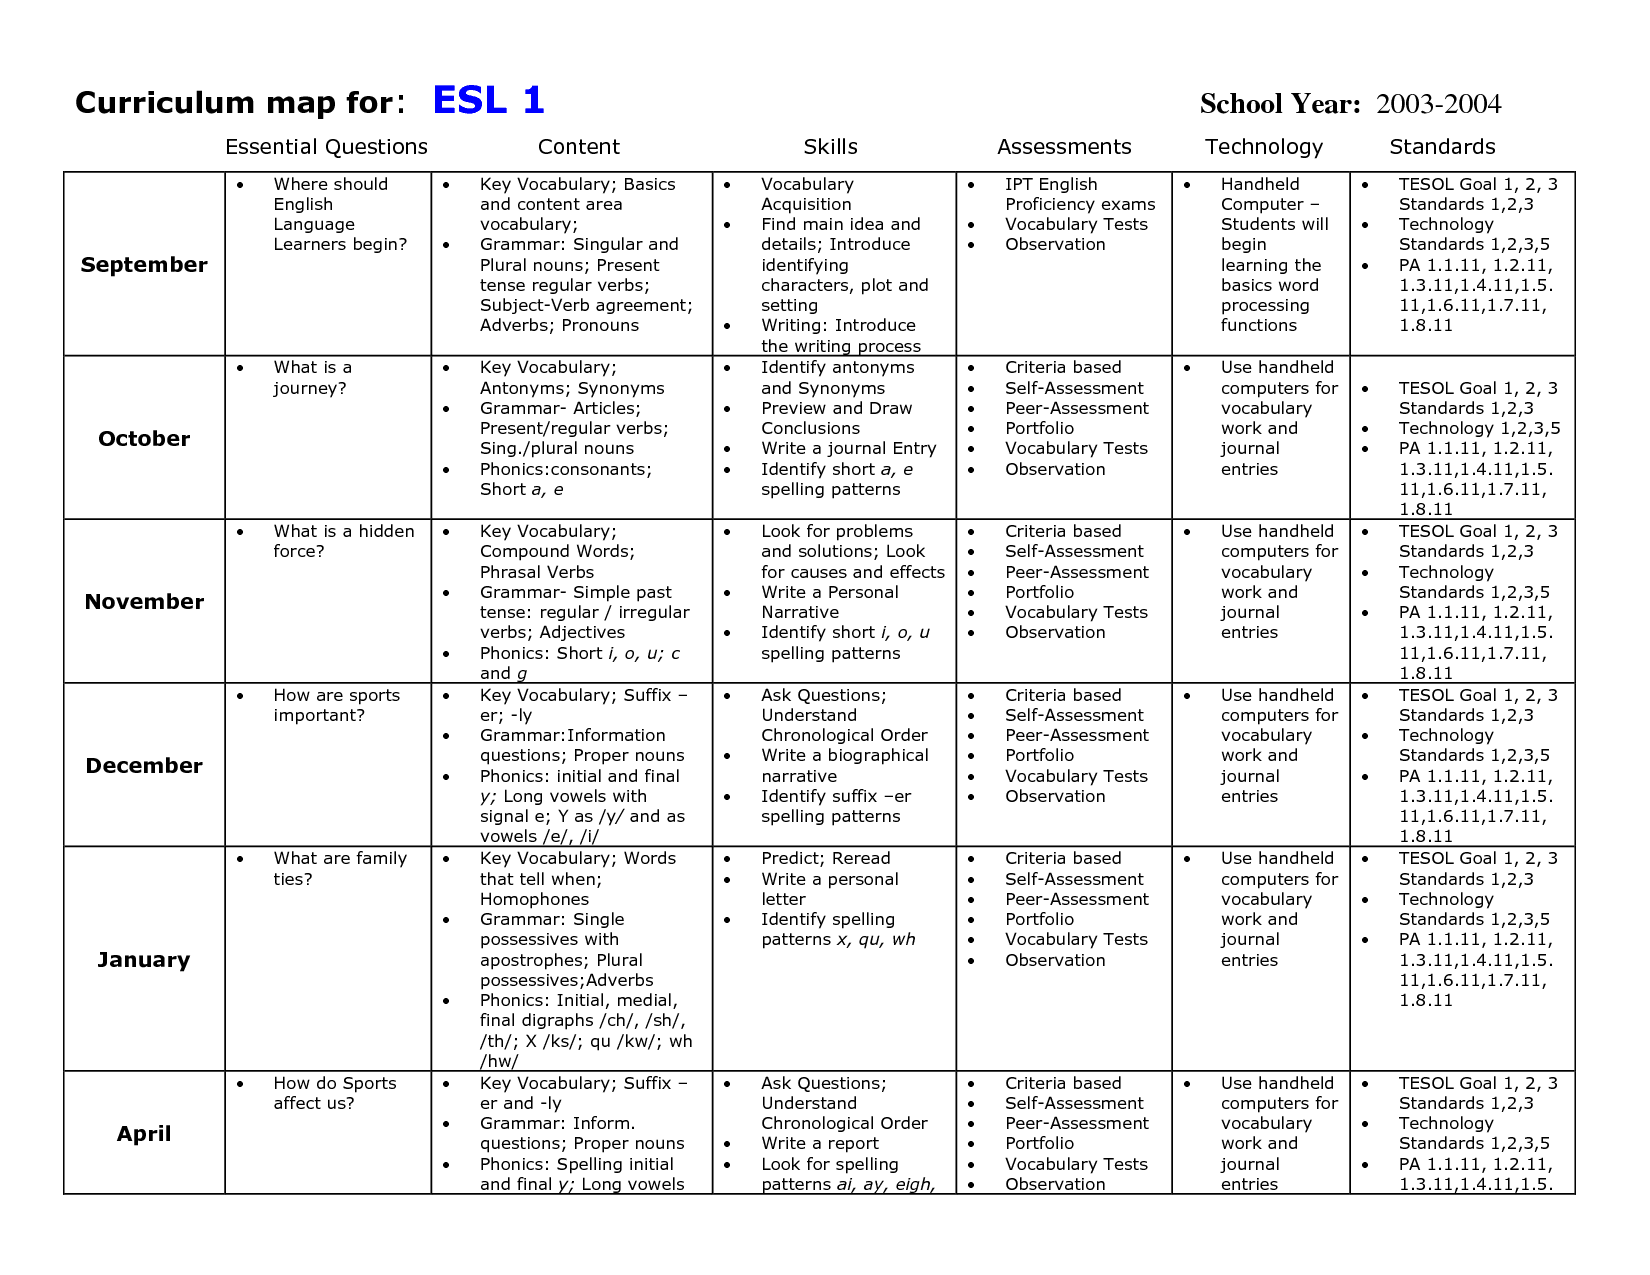 Curriculum map for esl esl ell esol eld tesol pinterest curriculum map for esl curriculum mapping template curriculum design curriculum planning private teacher maxwellsz